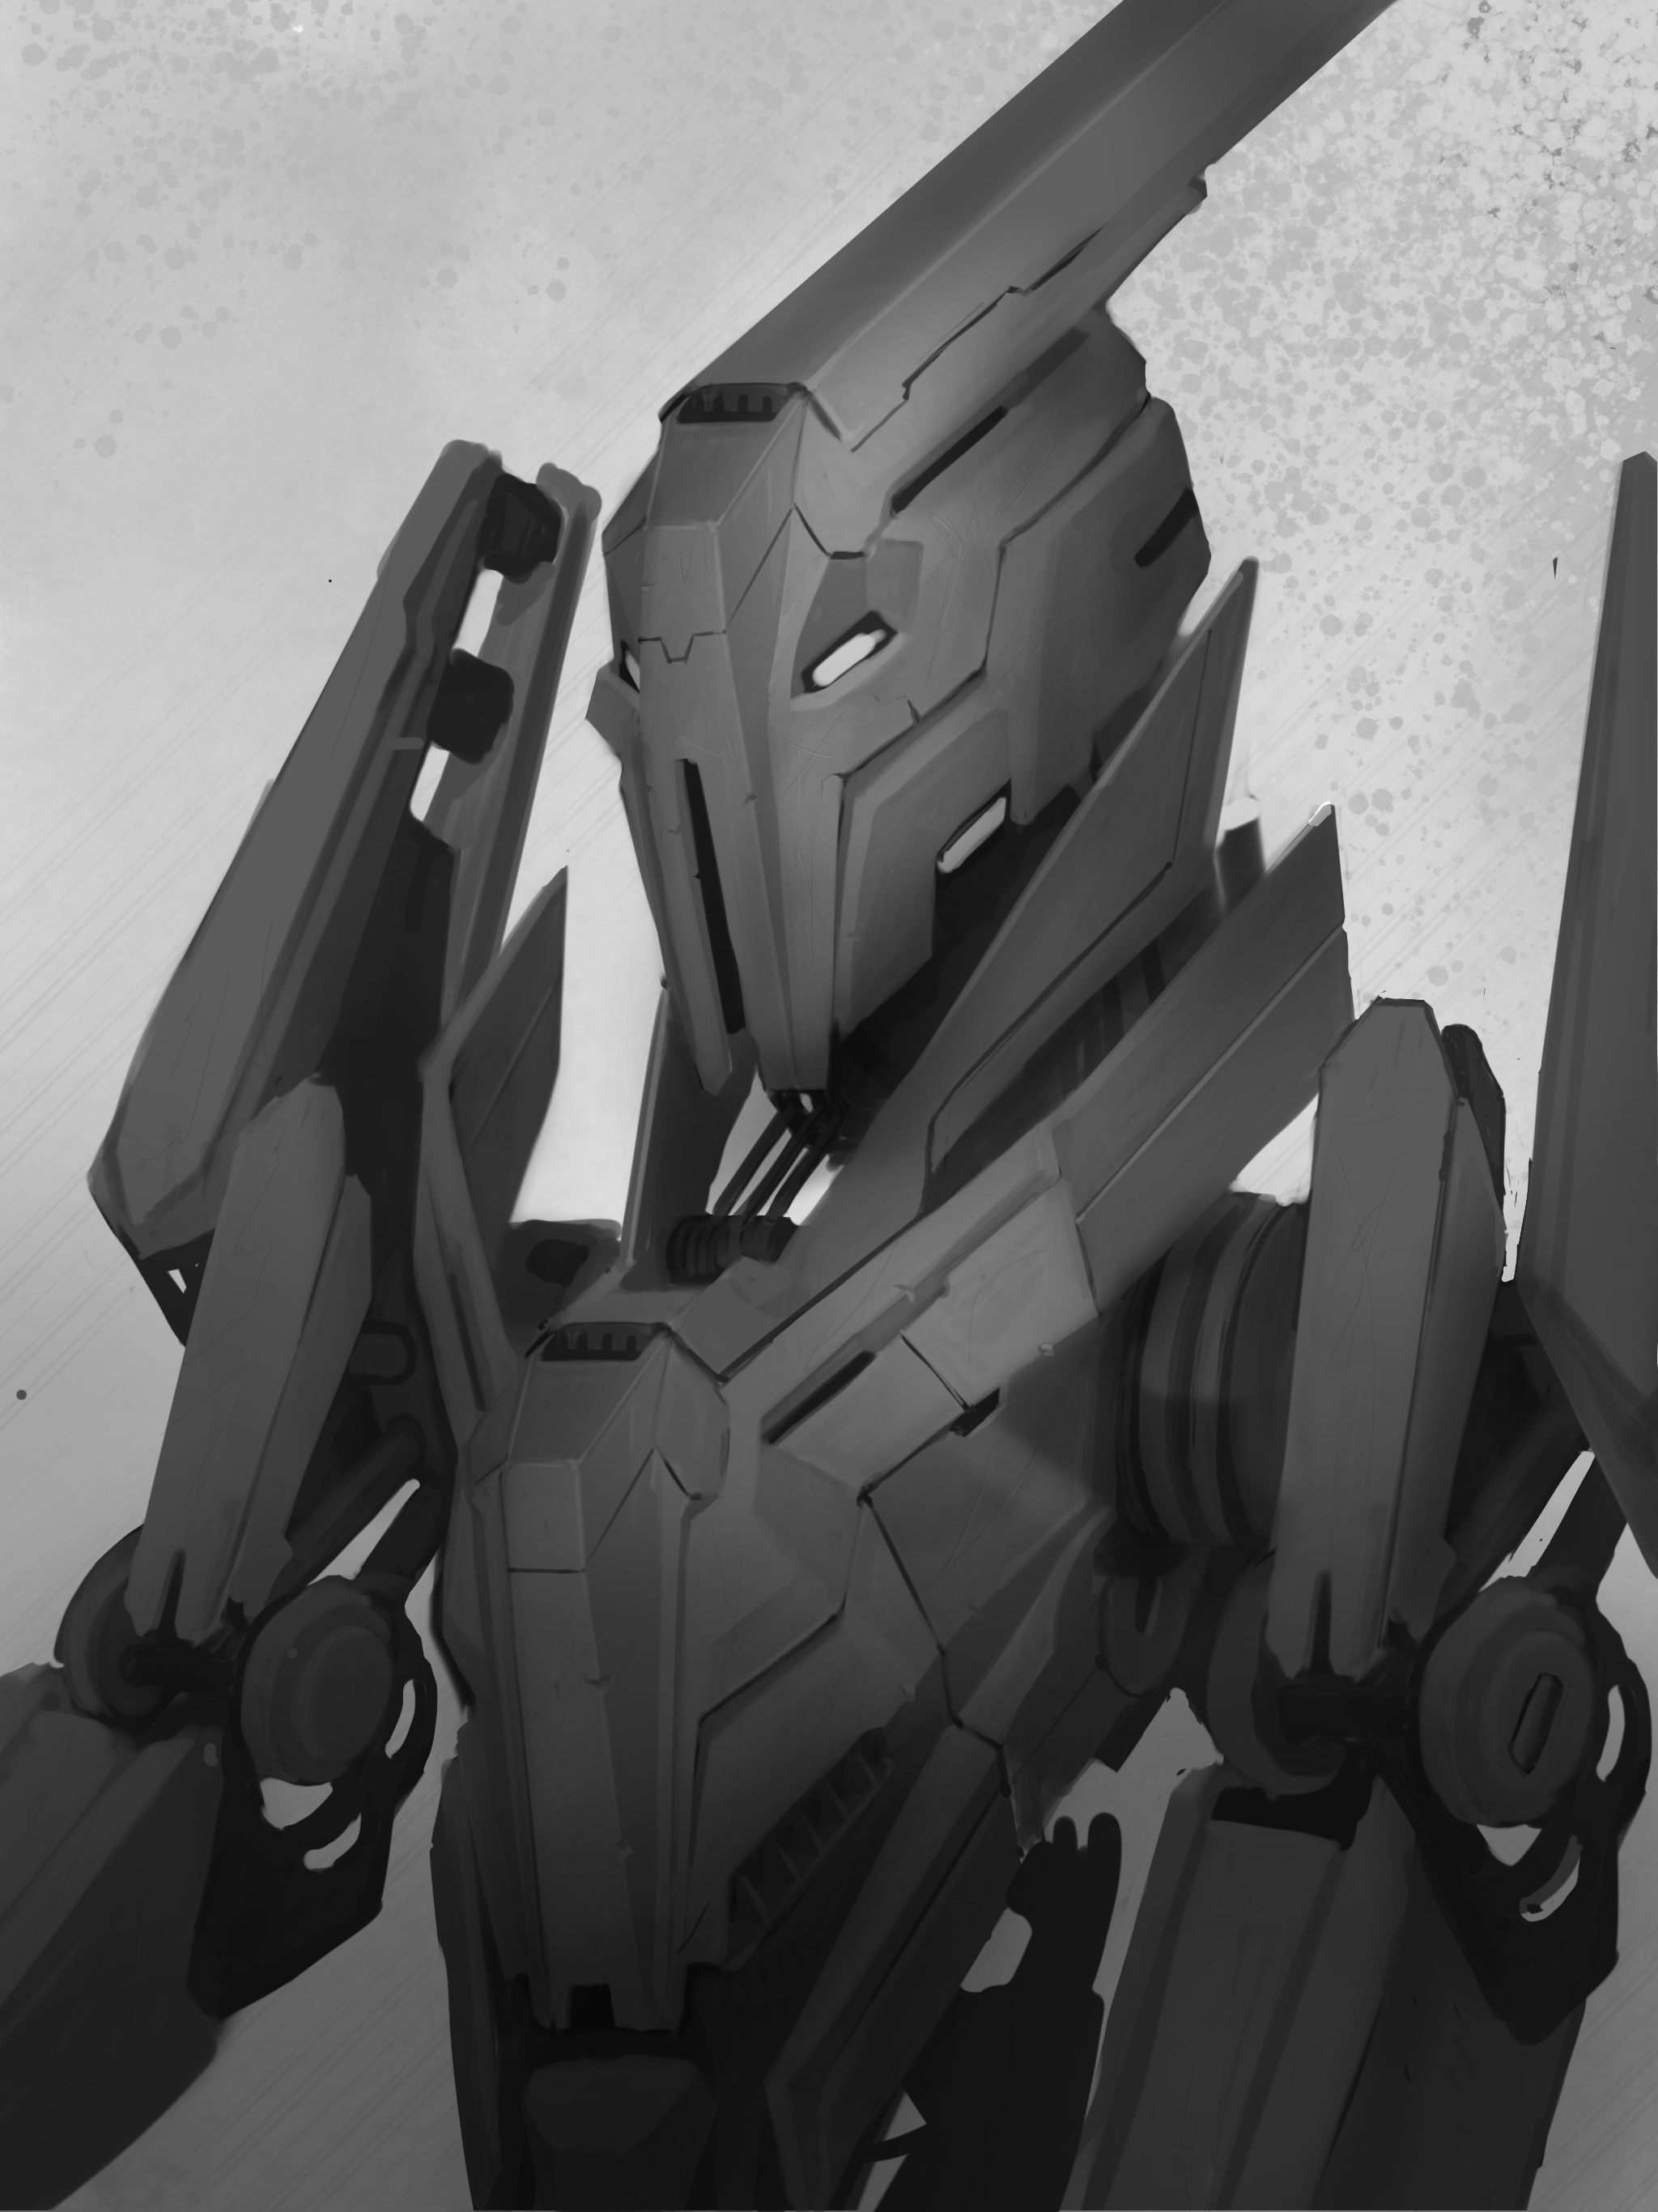 Mech Sketch / Procreate / iPad Pro